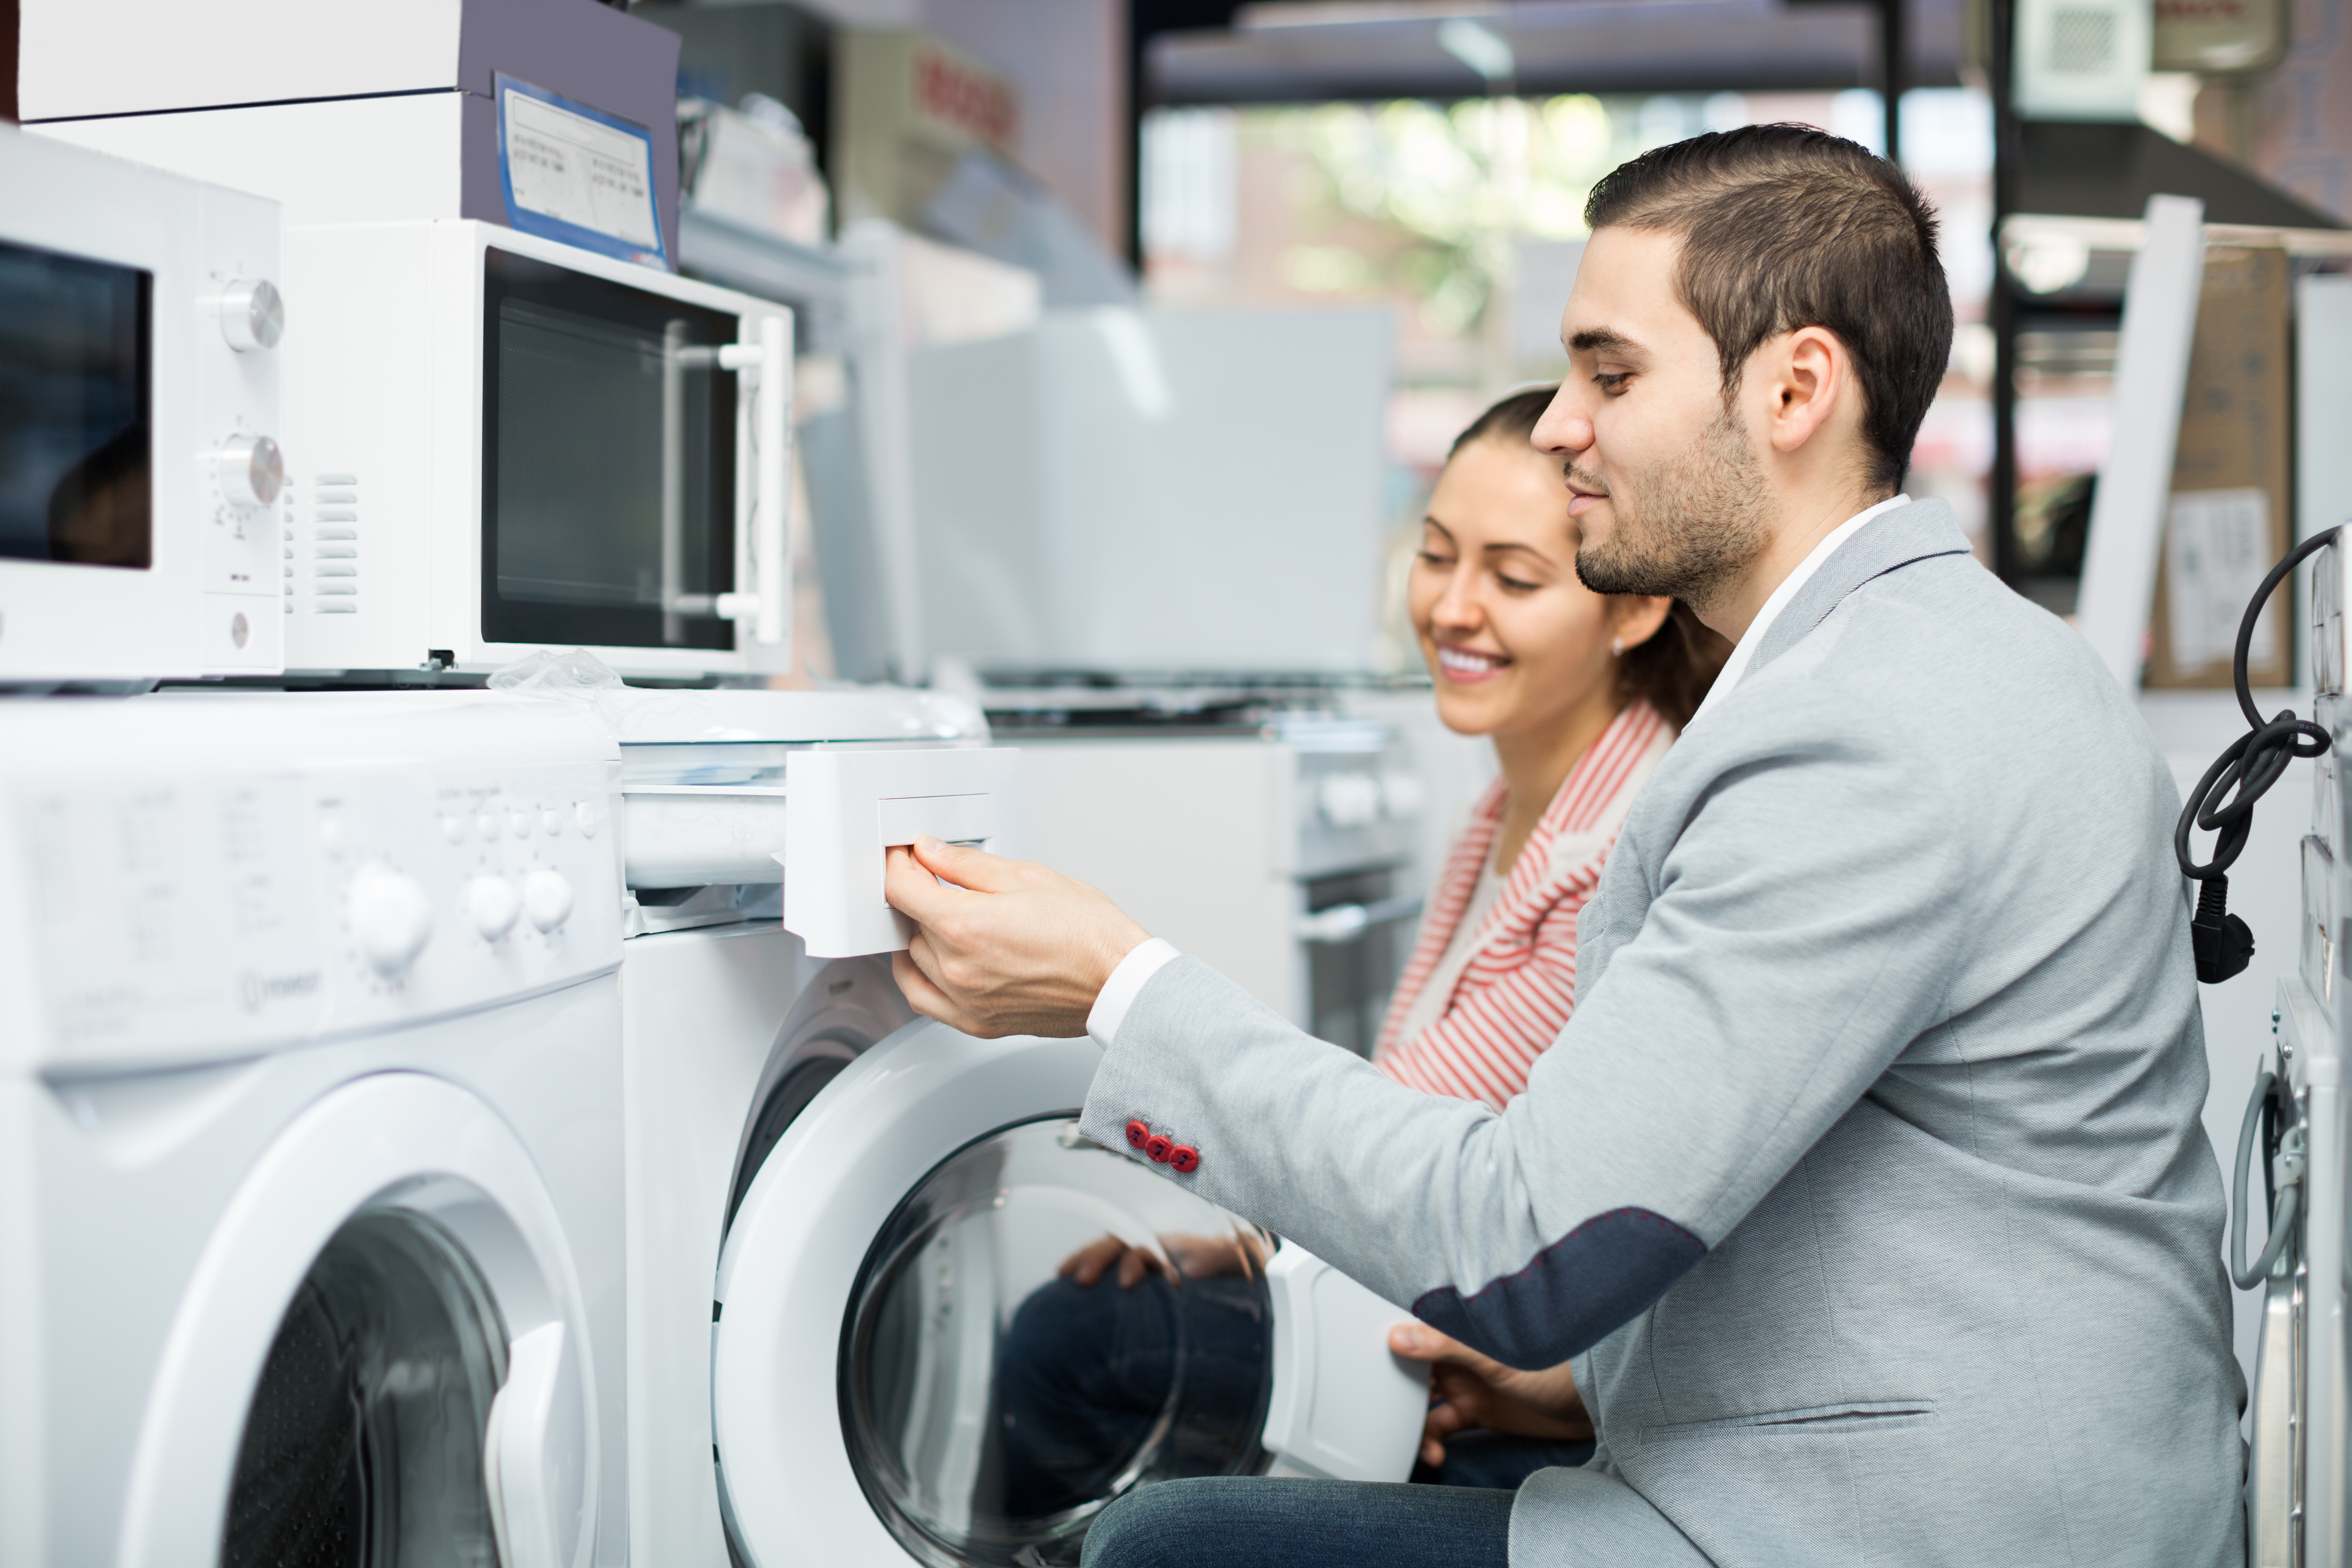 When to Find Good Deals on Furniture, Appliances, and More